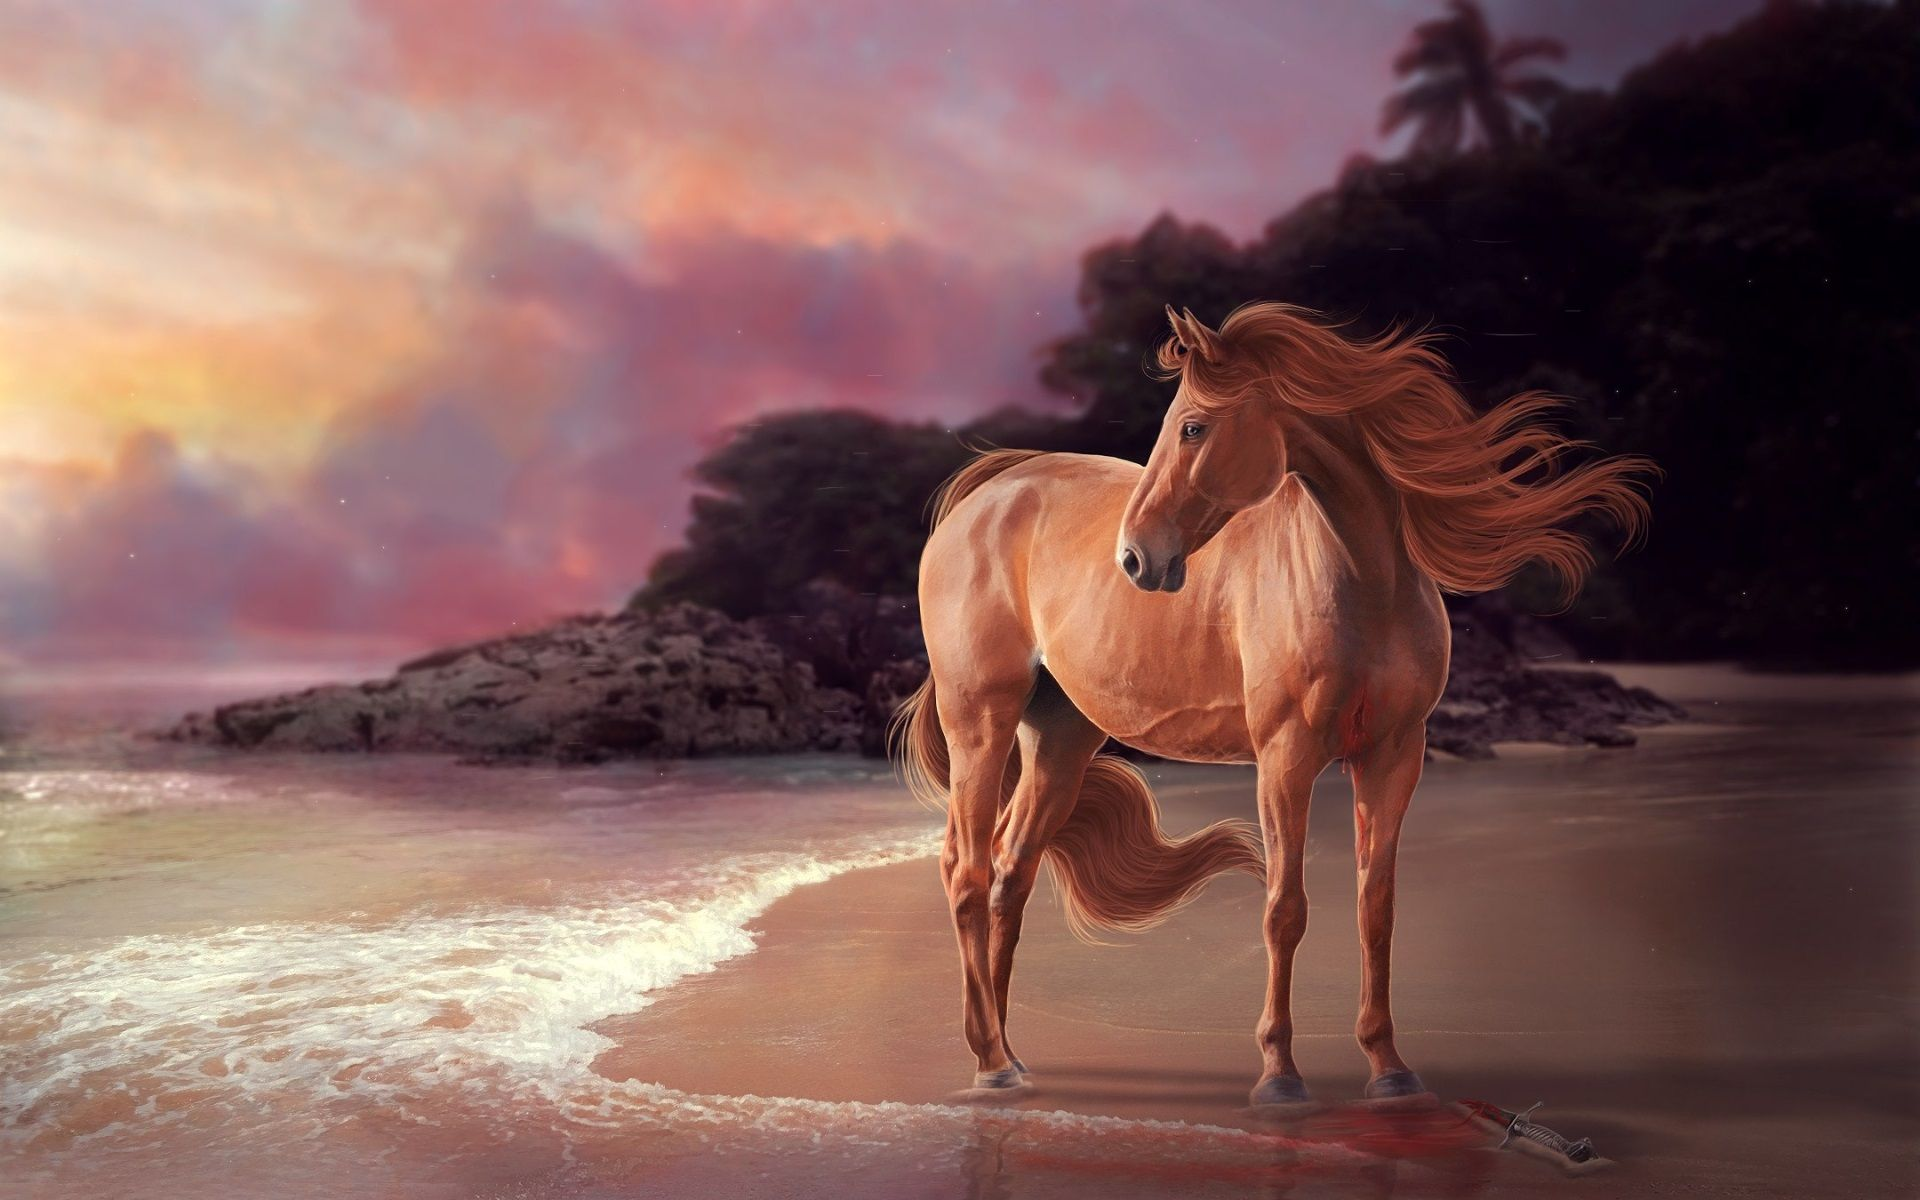 1920x1200 Horse Wallpaper For Pc In Hd Horse Wallpaper Horses Horse Posters